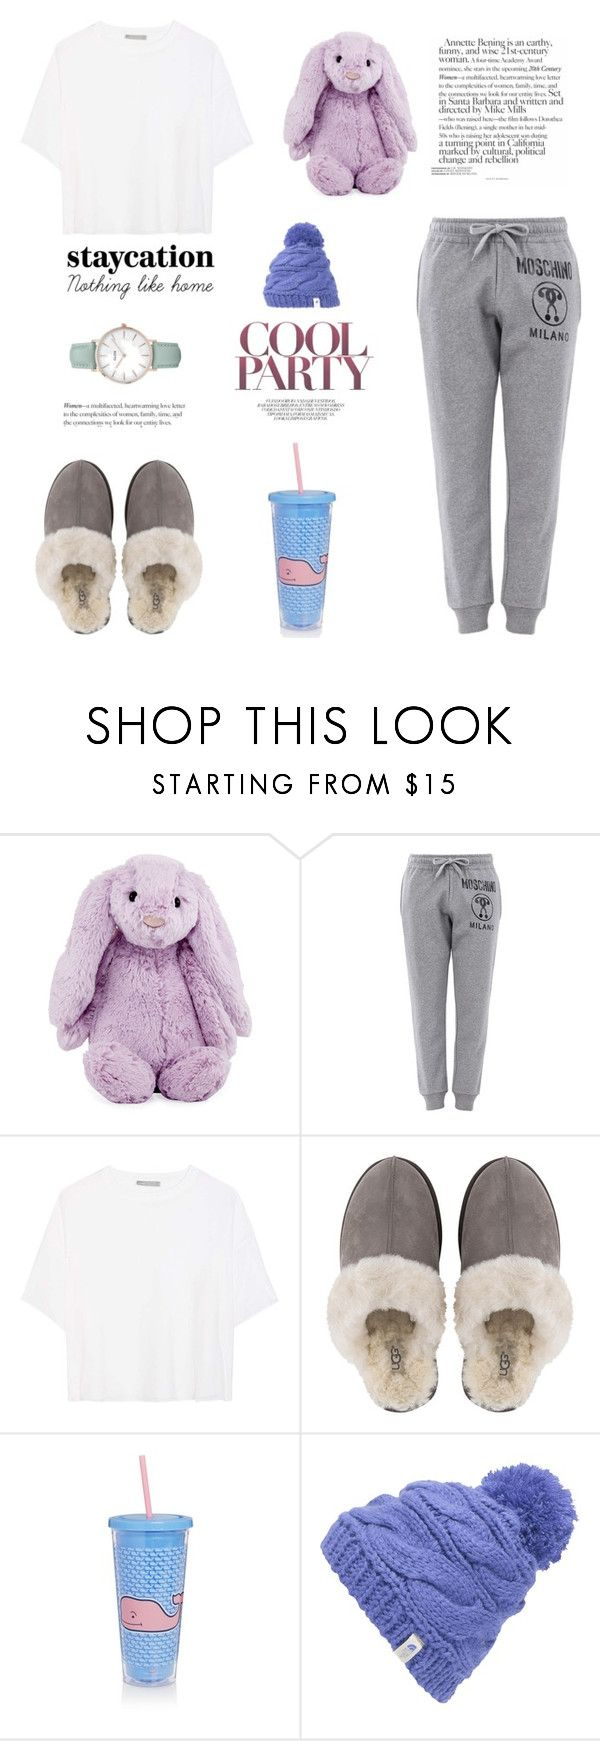 """""""Bunny Hole"""" by indigochameleon ❤ liked on Polyvore featuring Jellycat, Moschino, Vince, UGG, Sunnylife, The North Face and CLUSE"""